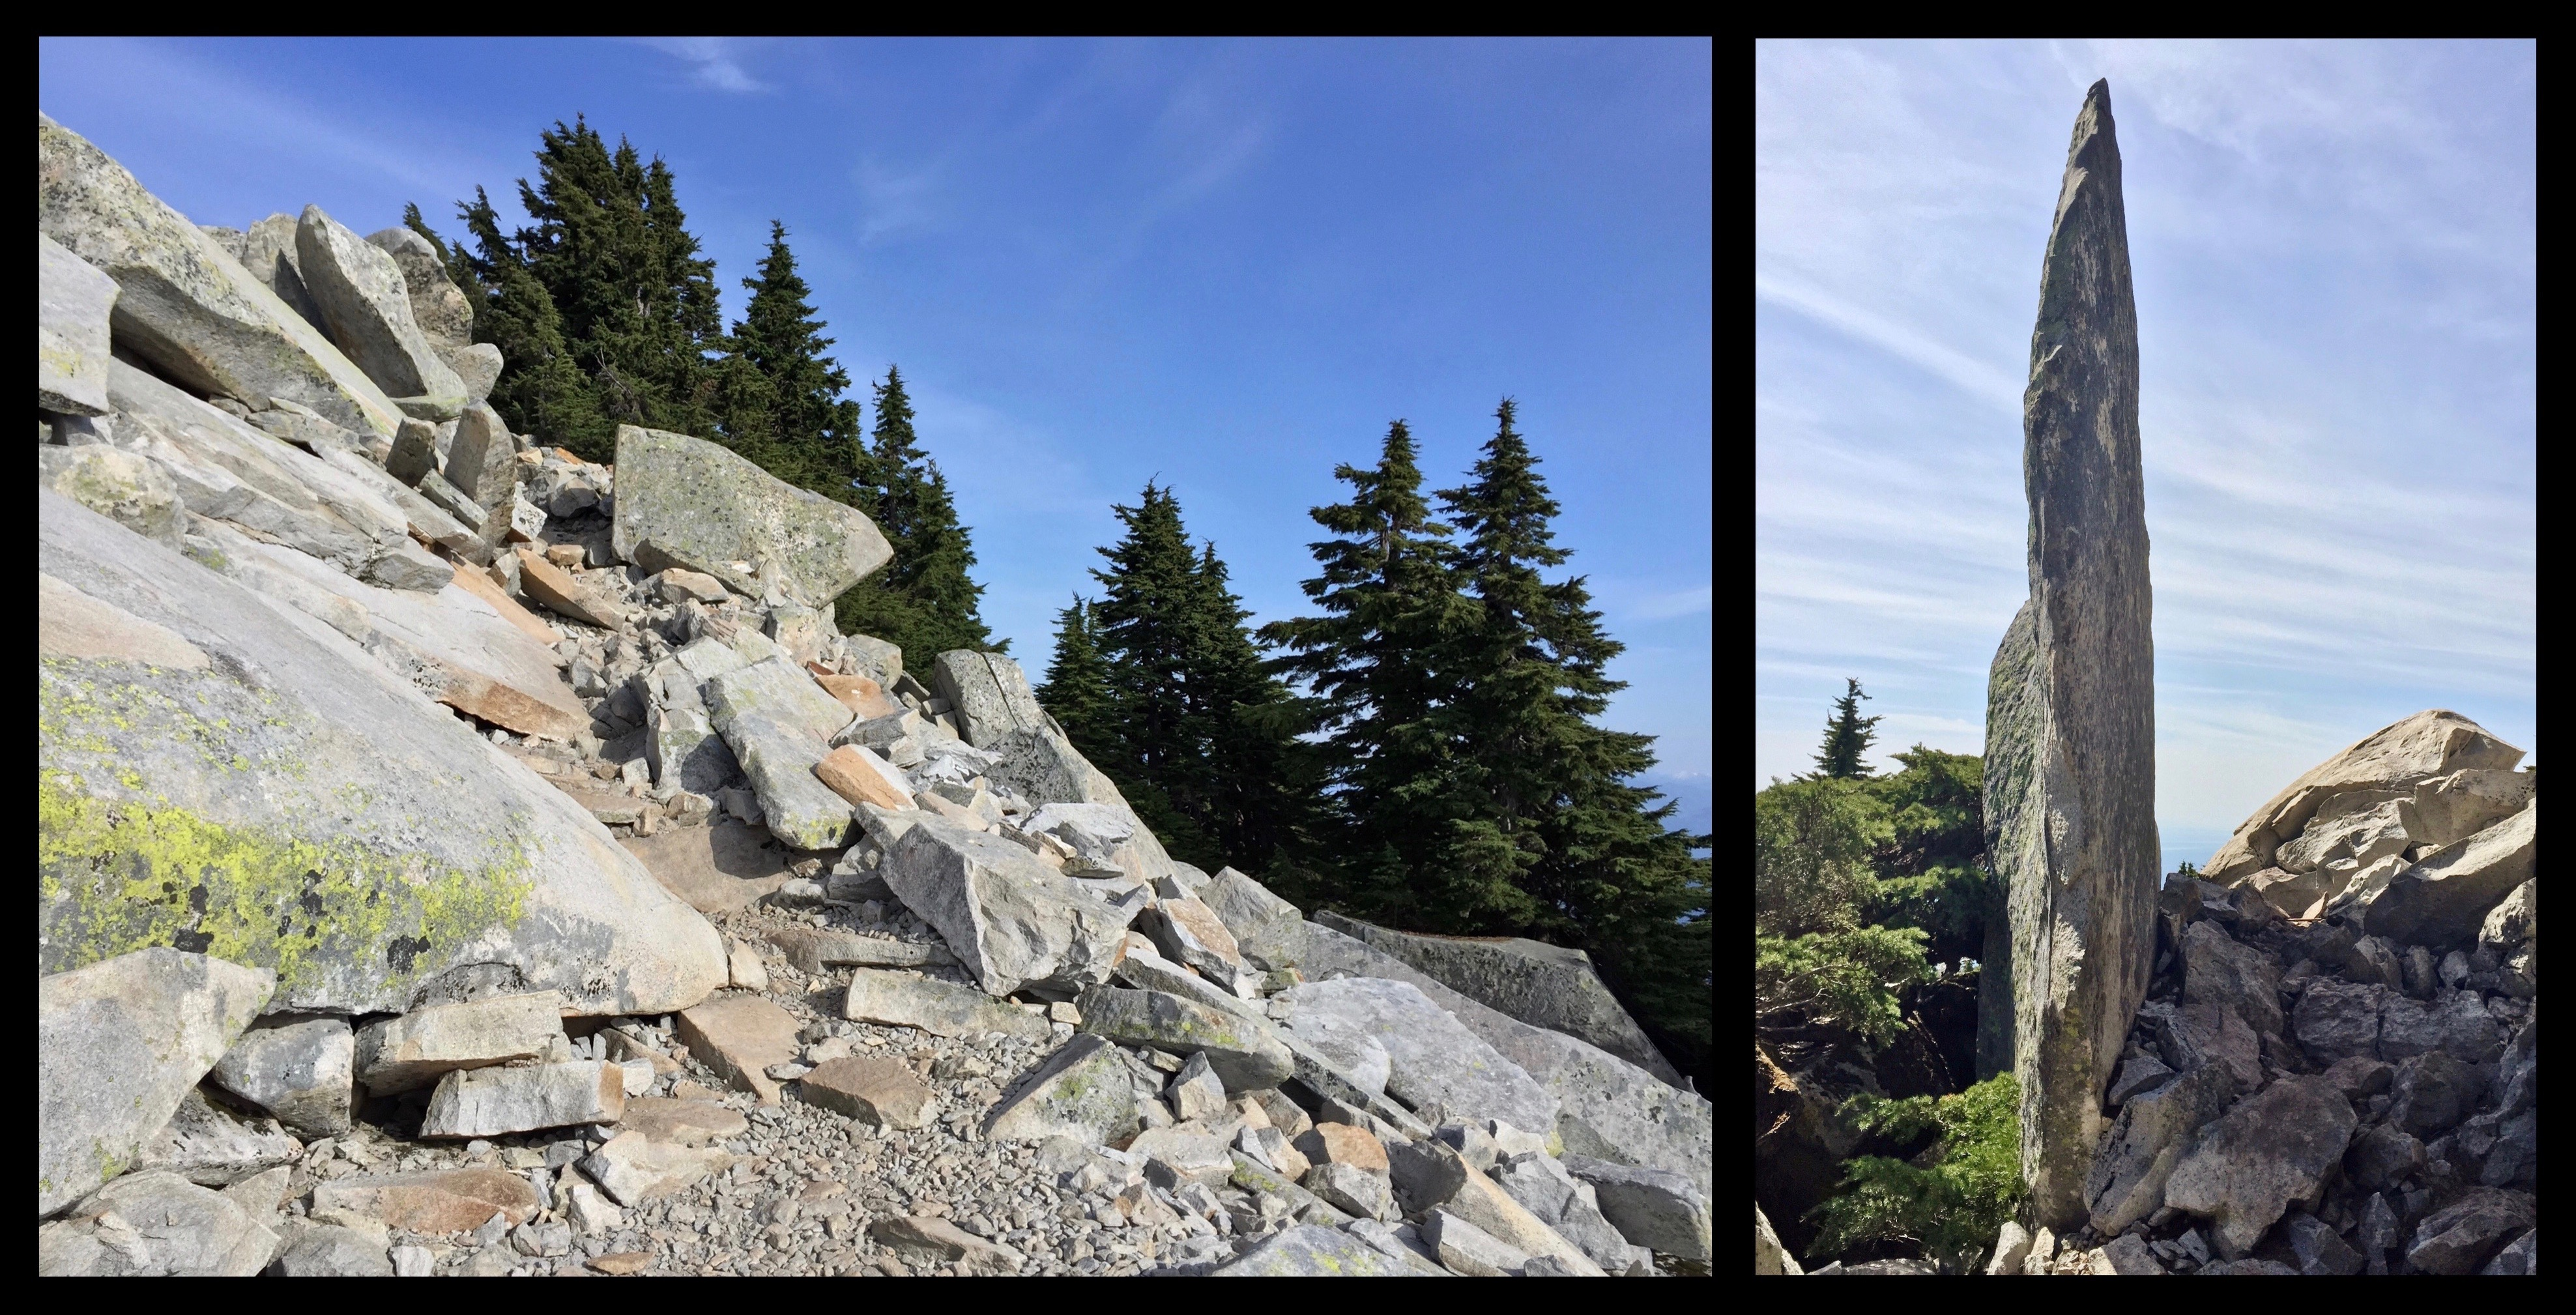 Rounding the summit, the trail picks its way through piles of ever larger boulders, including one knife-edged monolith standing perfectly upright beside the trail as if set by human hand. Mount Pilchuck Trail, May 09, 2015.